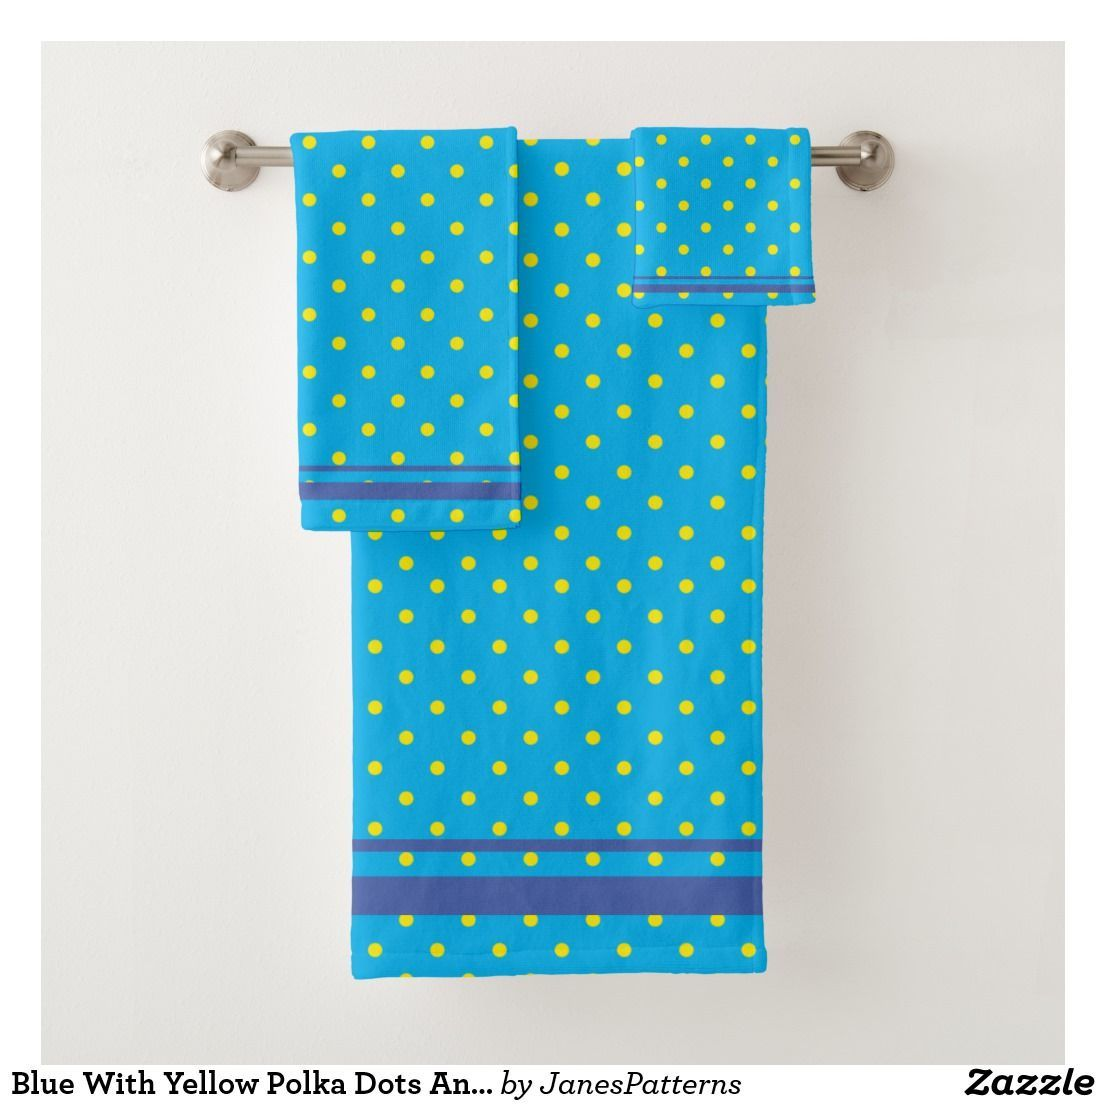 Blue With Yellow Polka Dots And Blue Stripes Bath Towel Set